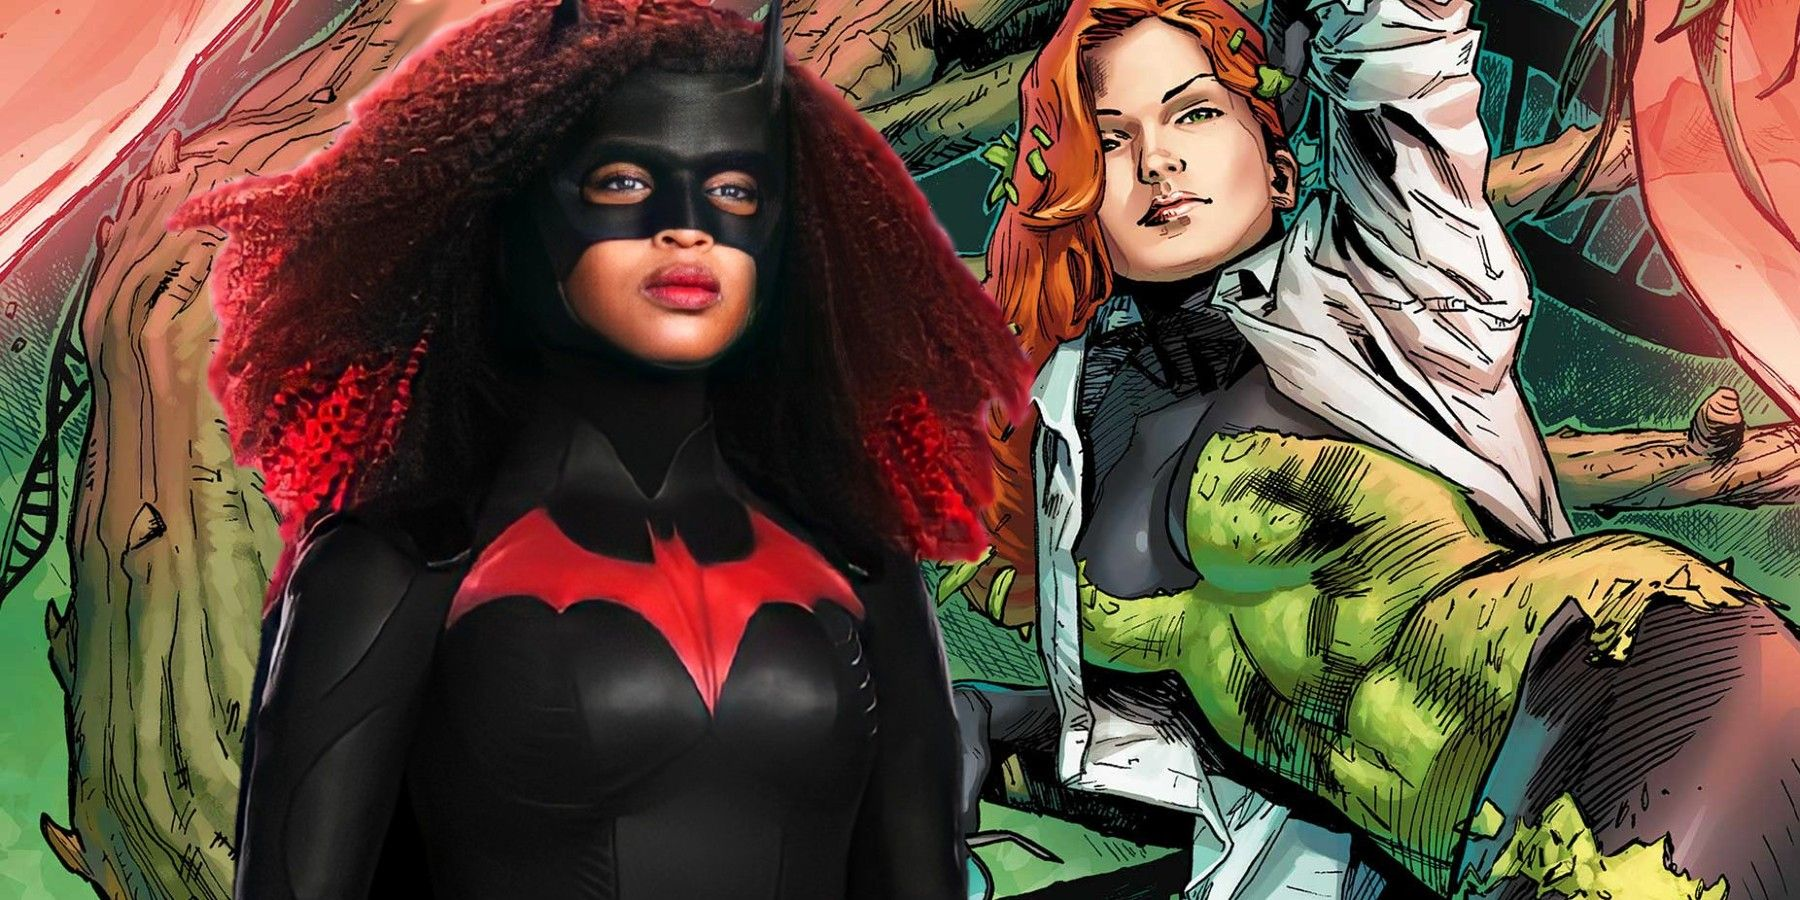 Batwoman Season 3 Will Have a Major Story Arc for Poison Ivy